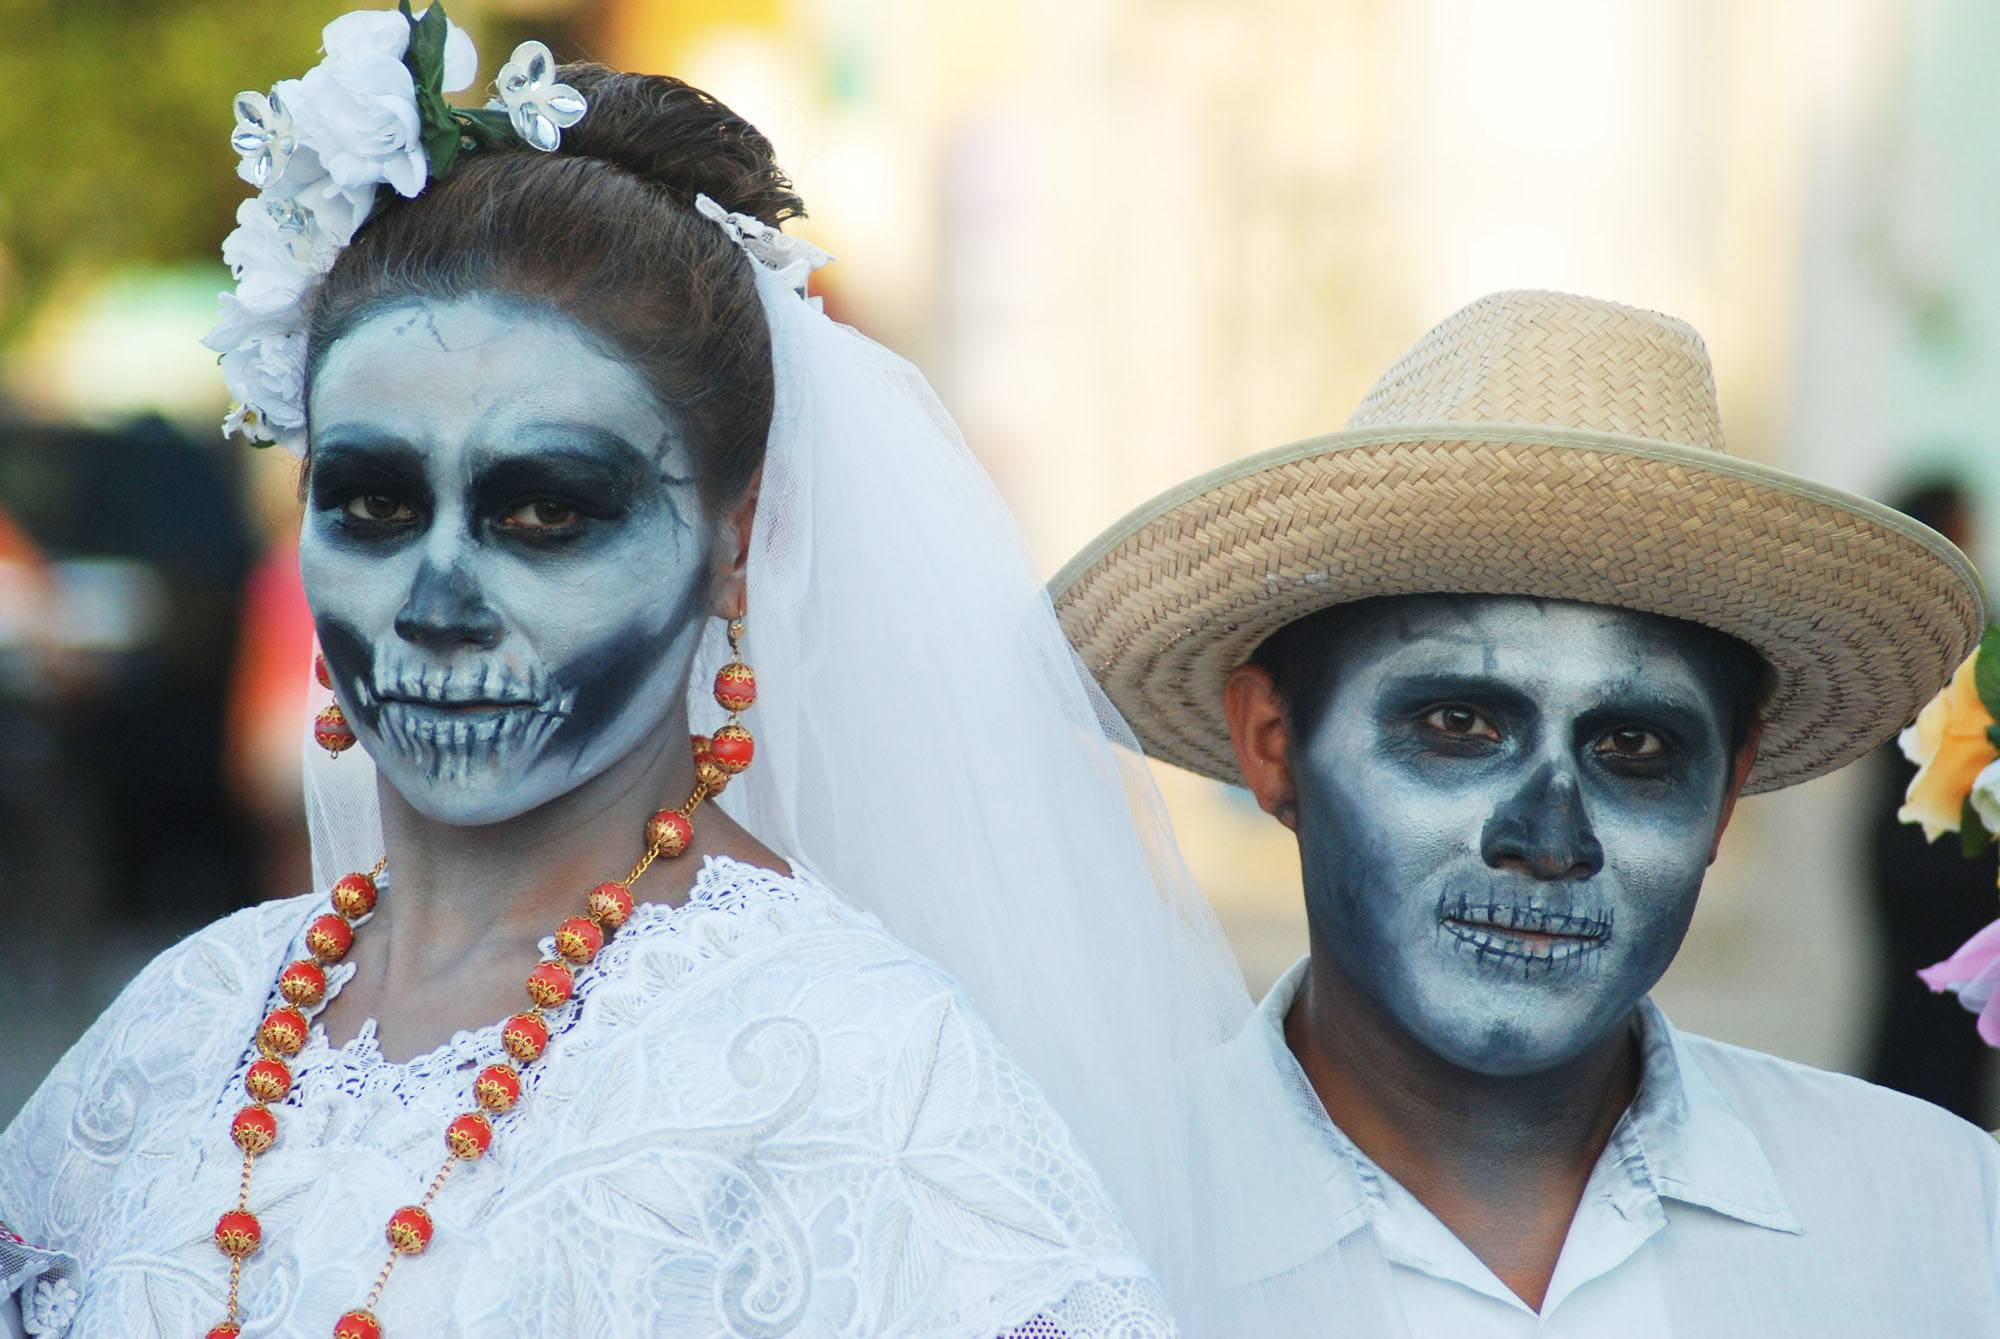 Catrina and Catrine face makeup (Mexico Tourism Board)